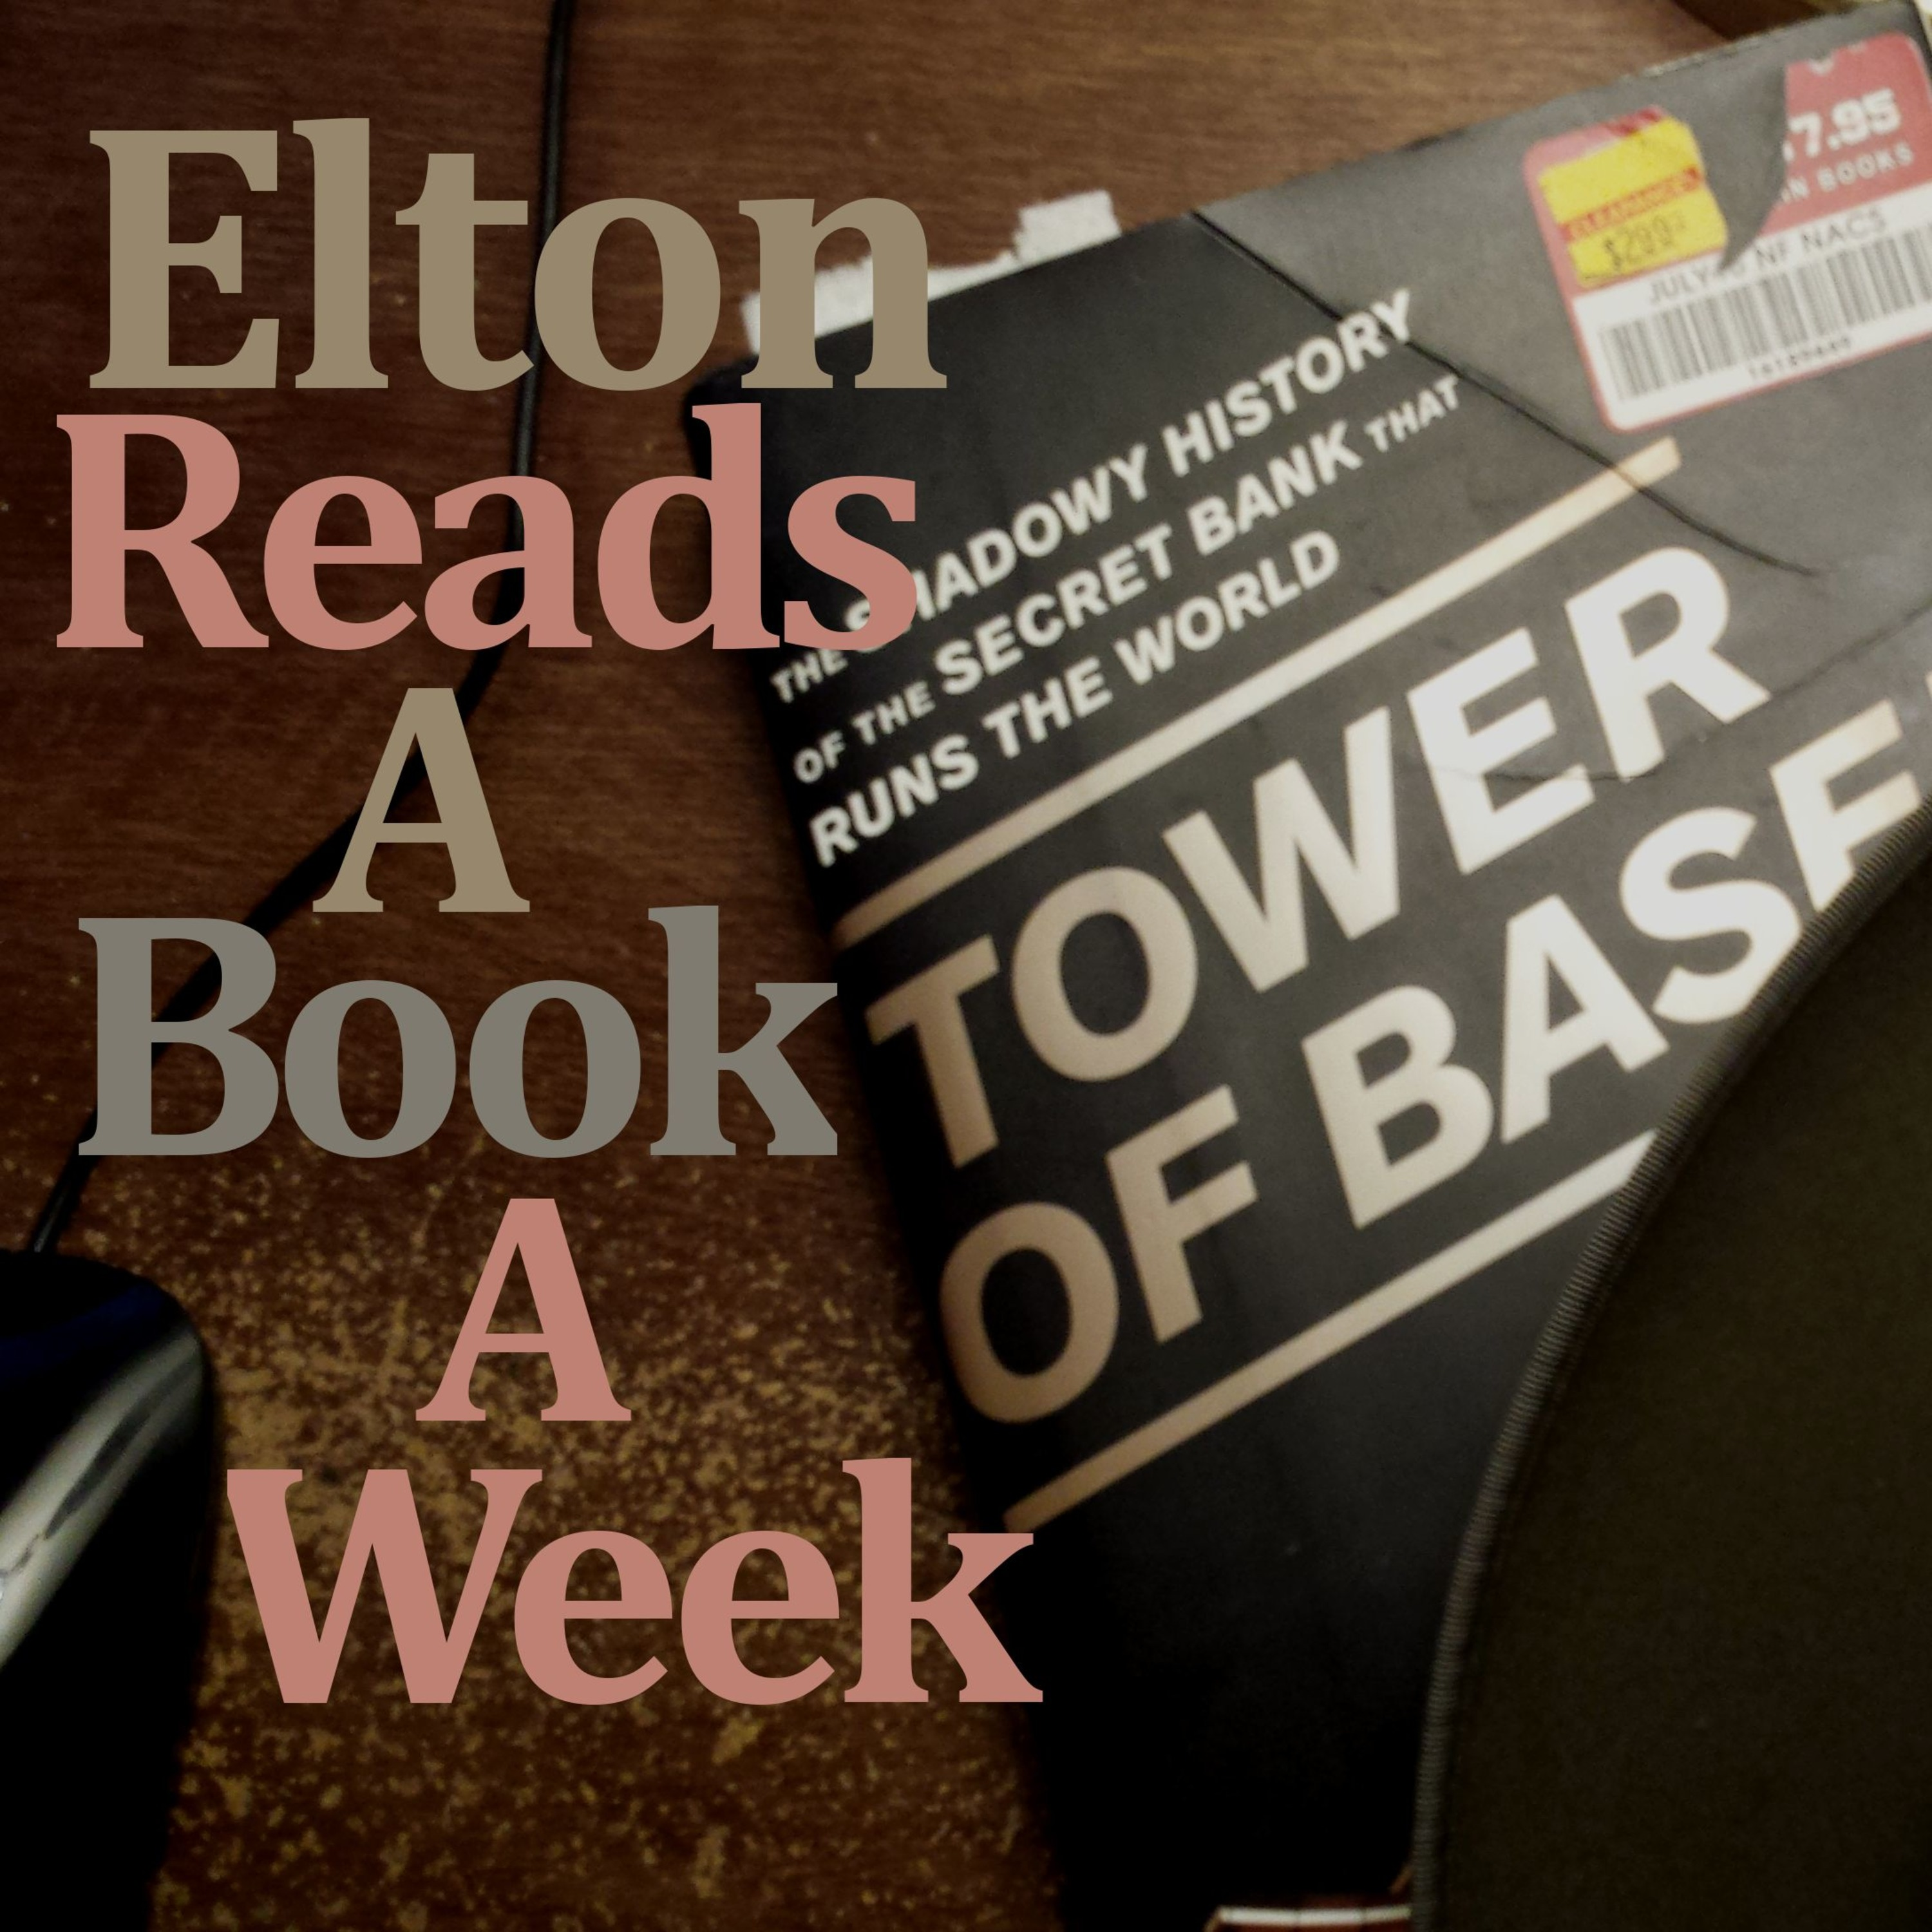 ERABAW - Episode 005 - Tower of Basel by Adam Lebor